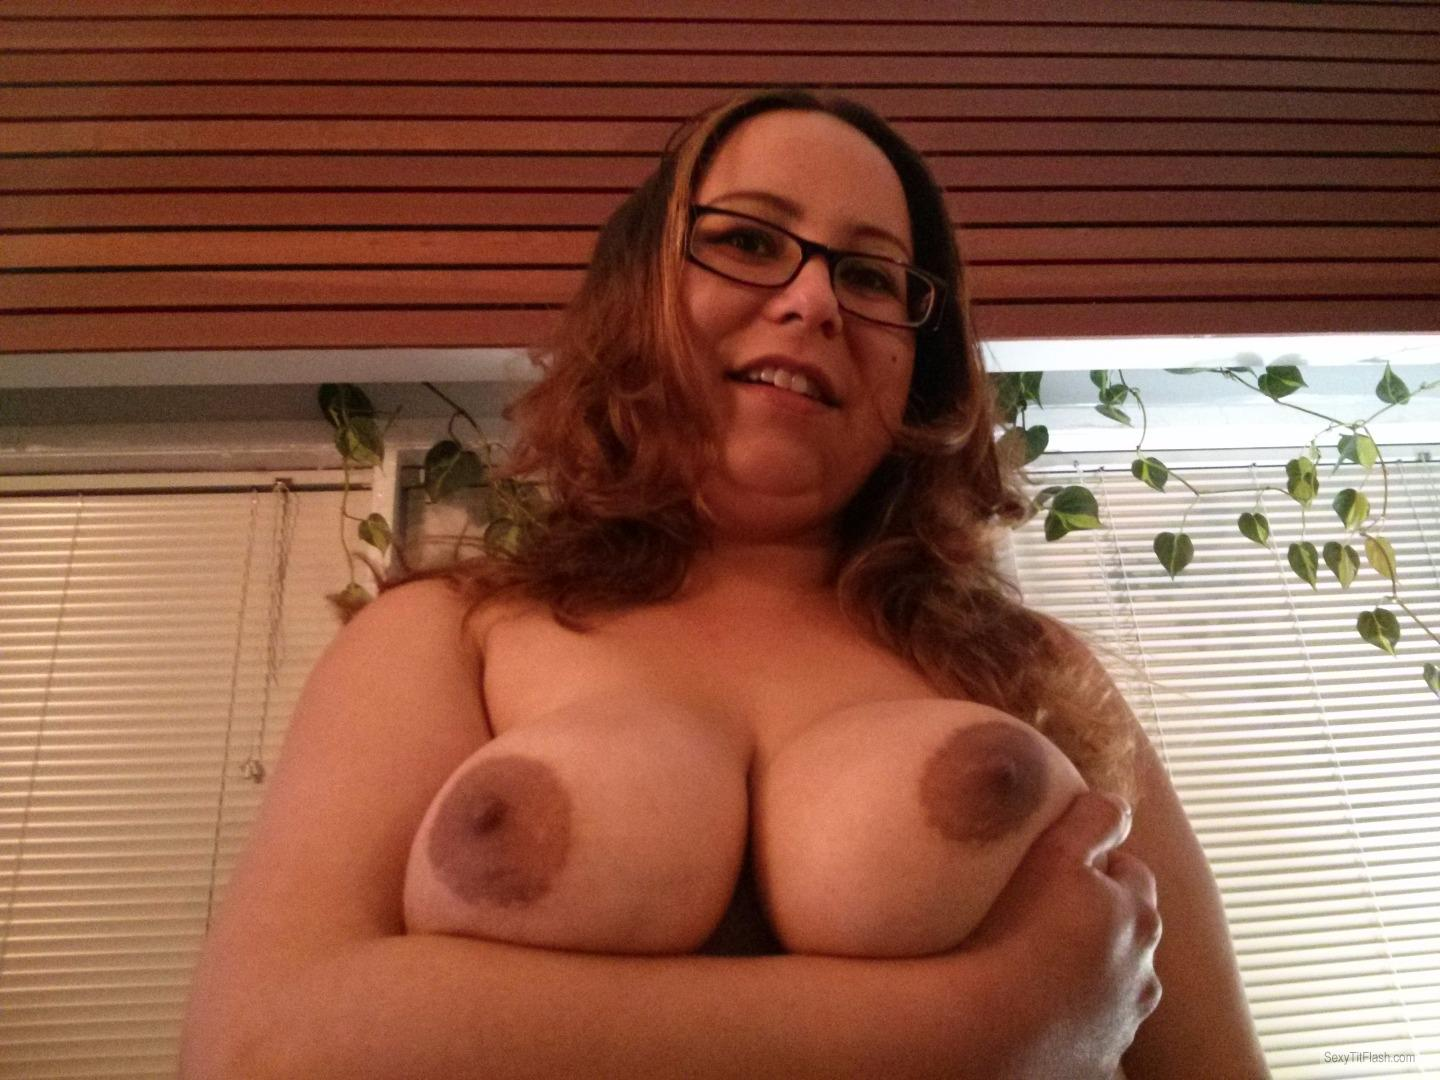 Tit Flash: Ex-Girlfriend's Big Tits - Topless Jackie's Titties from Canada